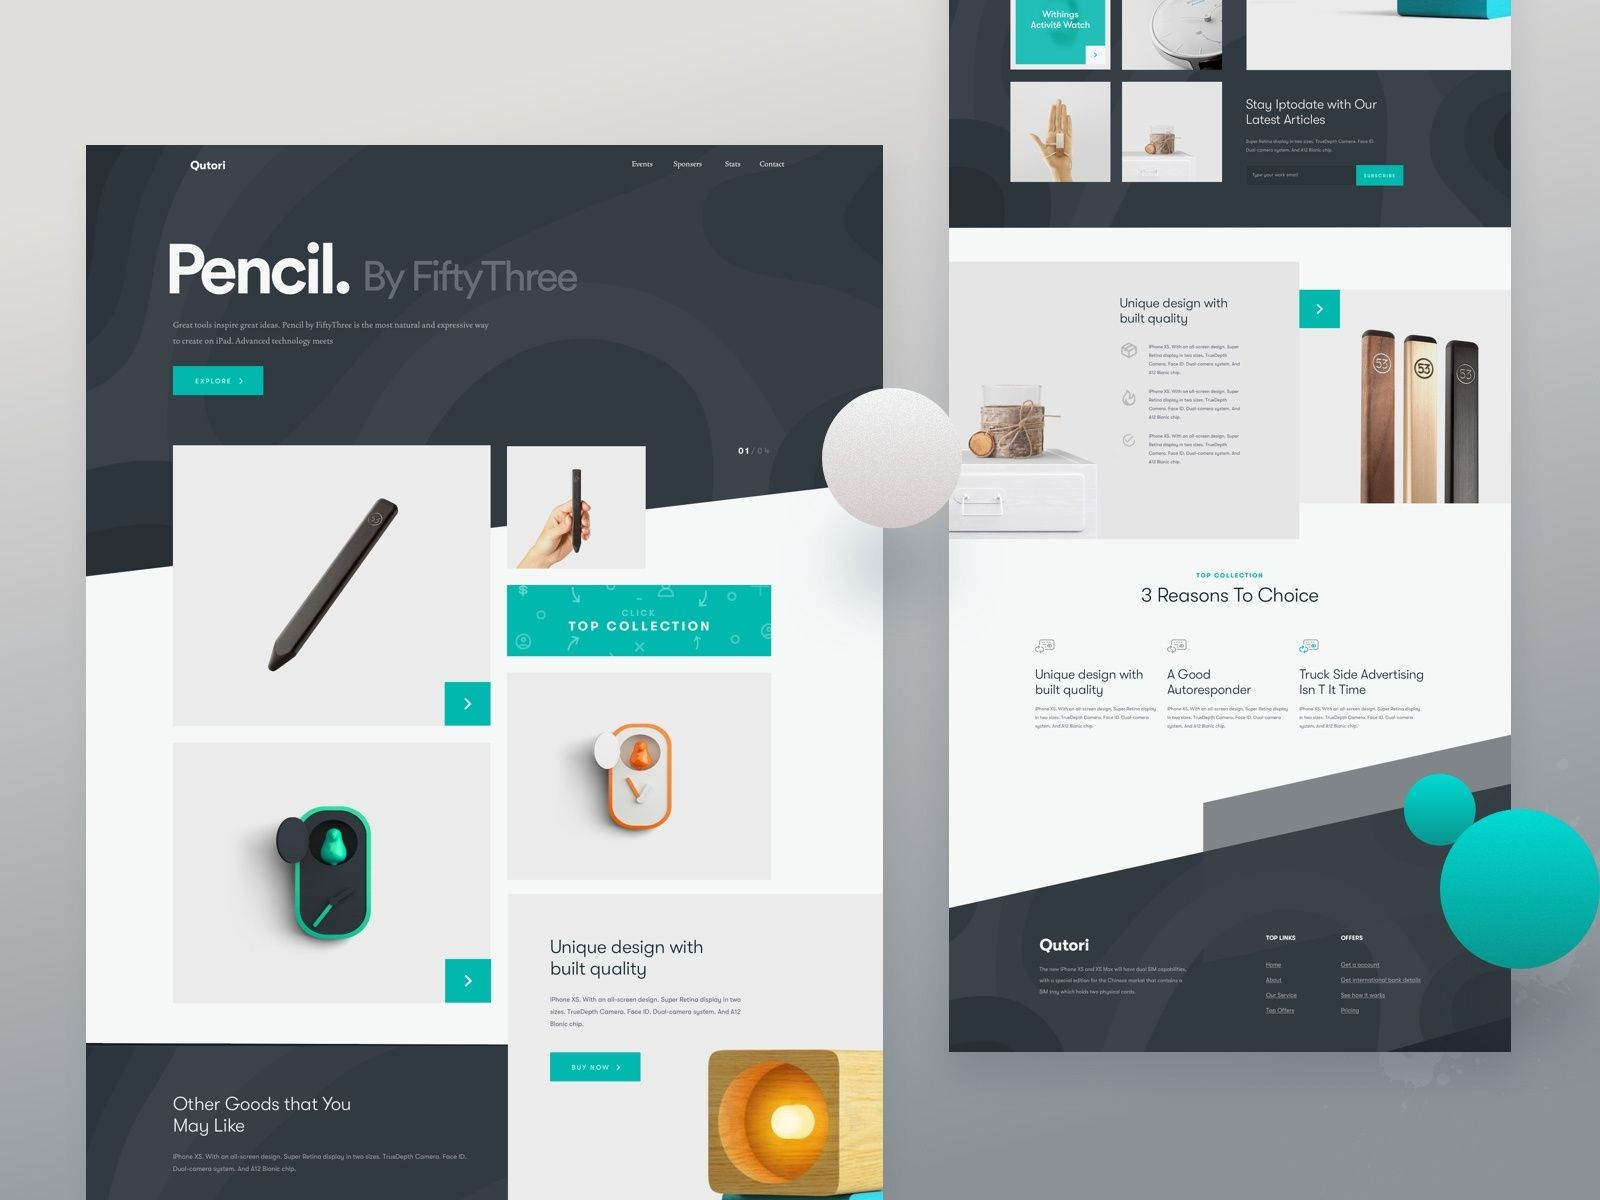 Pencil Product Landing Page Web Design 2018 In 2020 Landing Page Web Design Clean Web Design